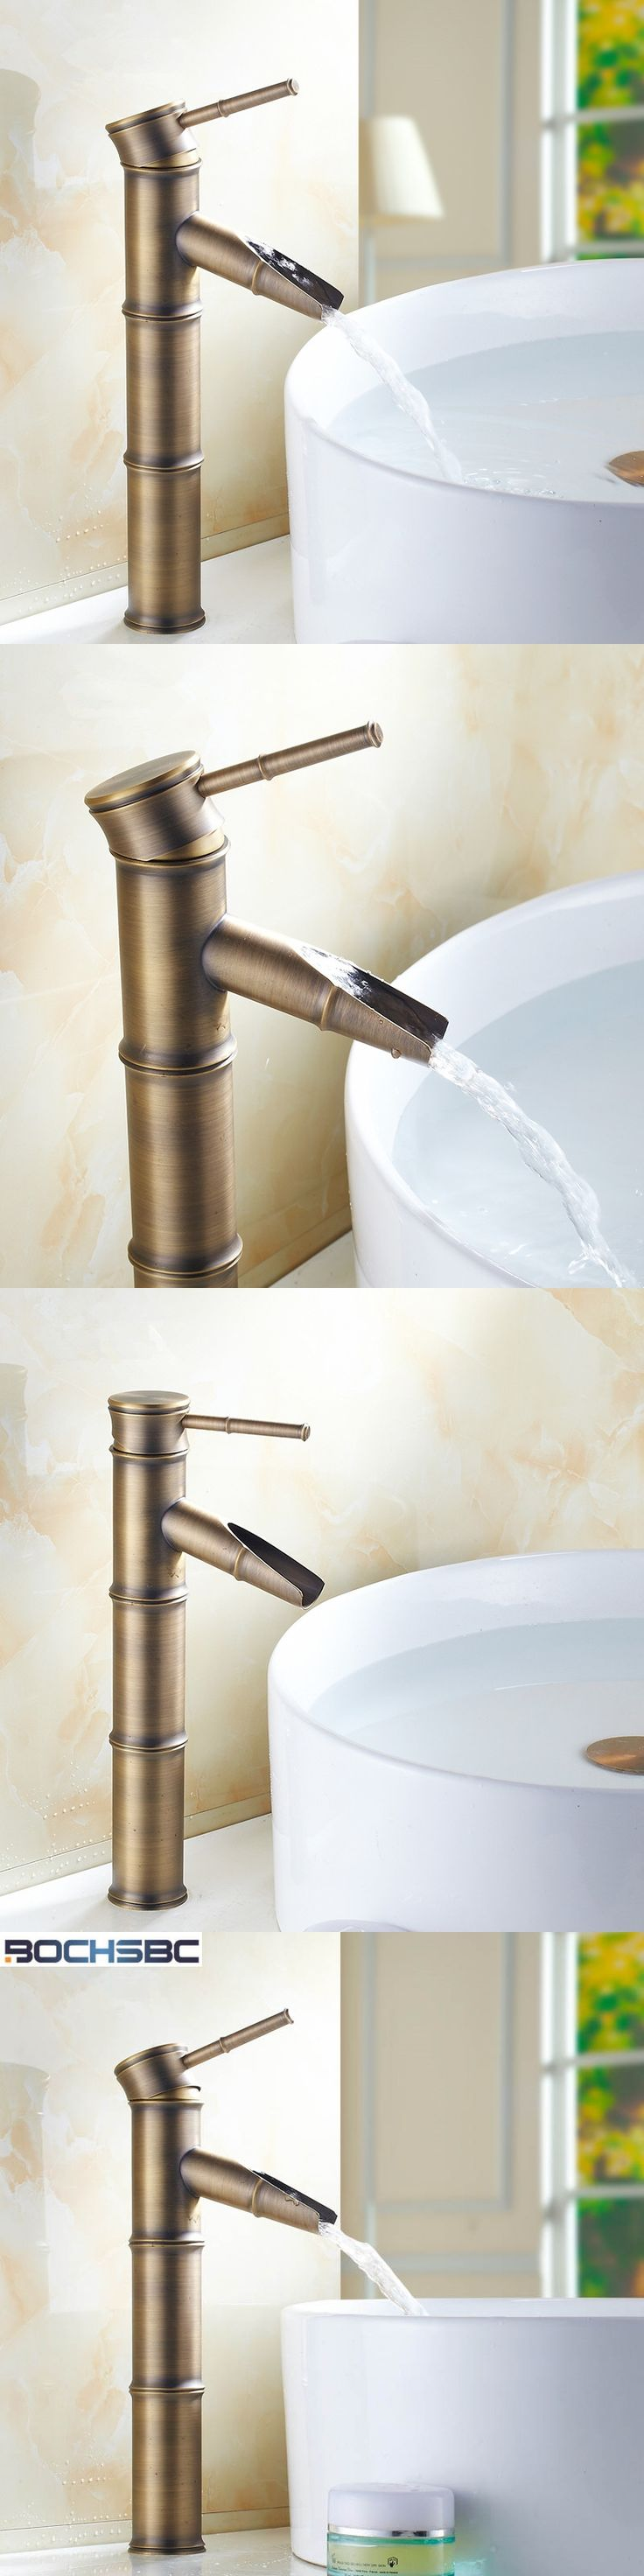 product wooalan dhgate brass in chrome com from accessories tap wall bathroom spout